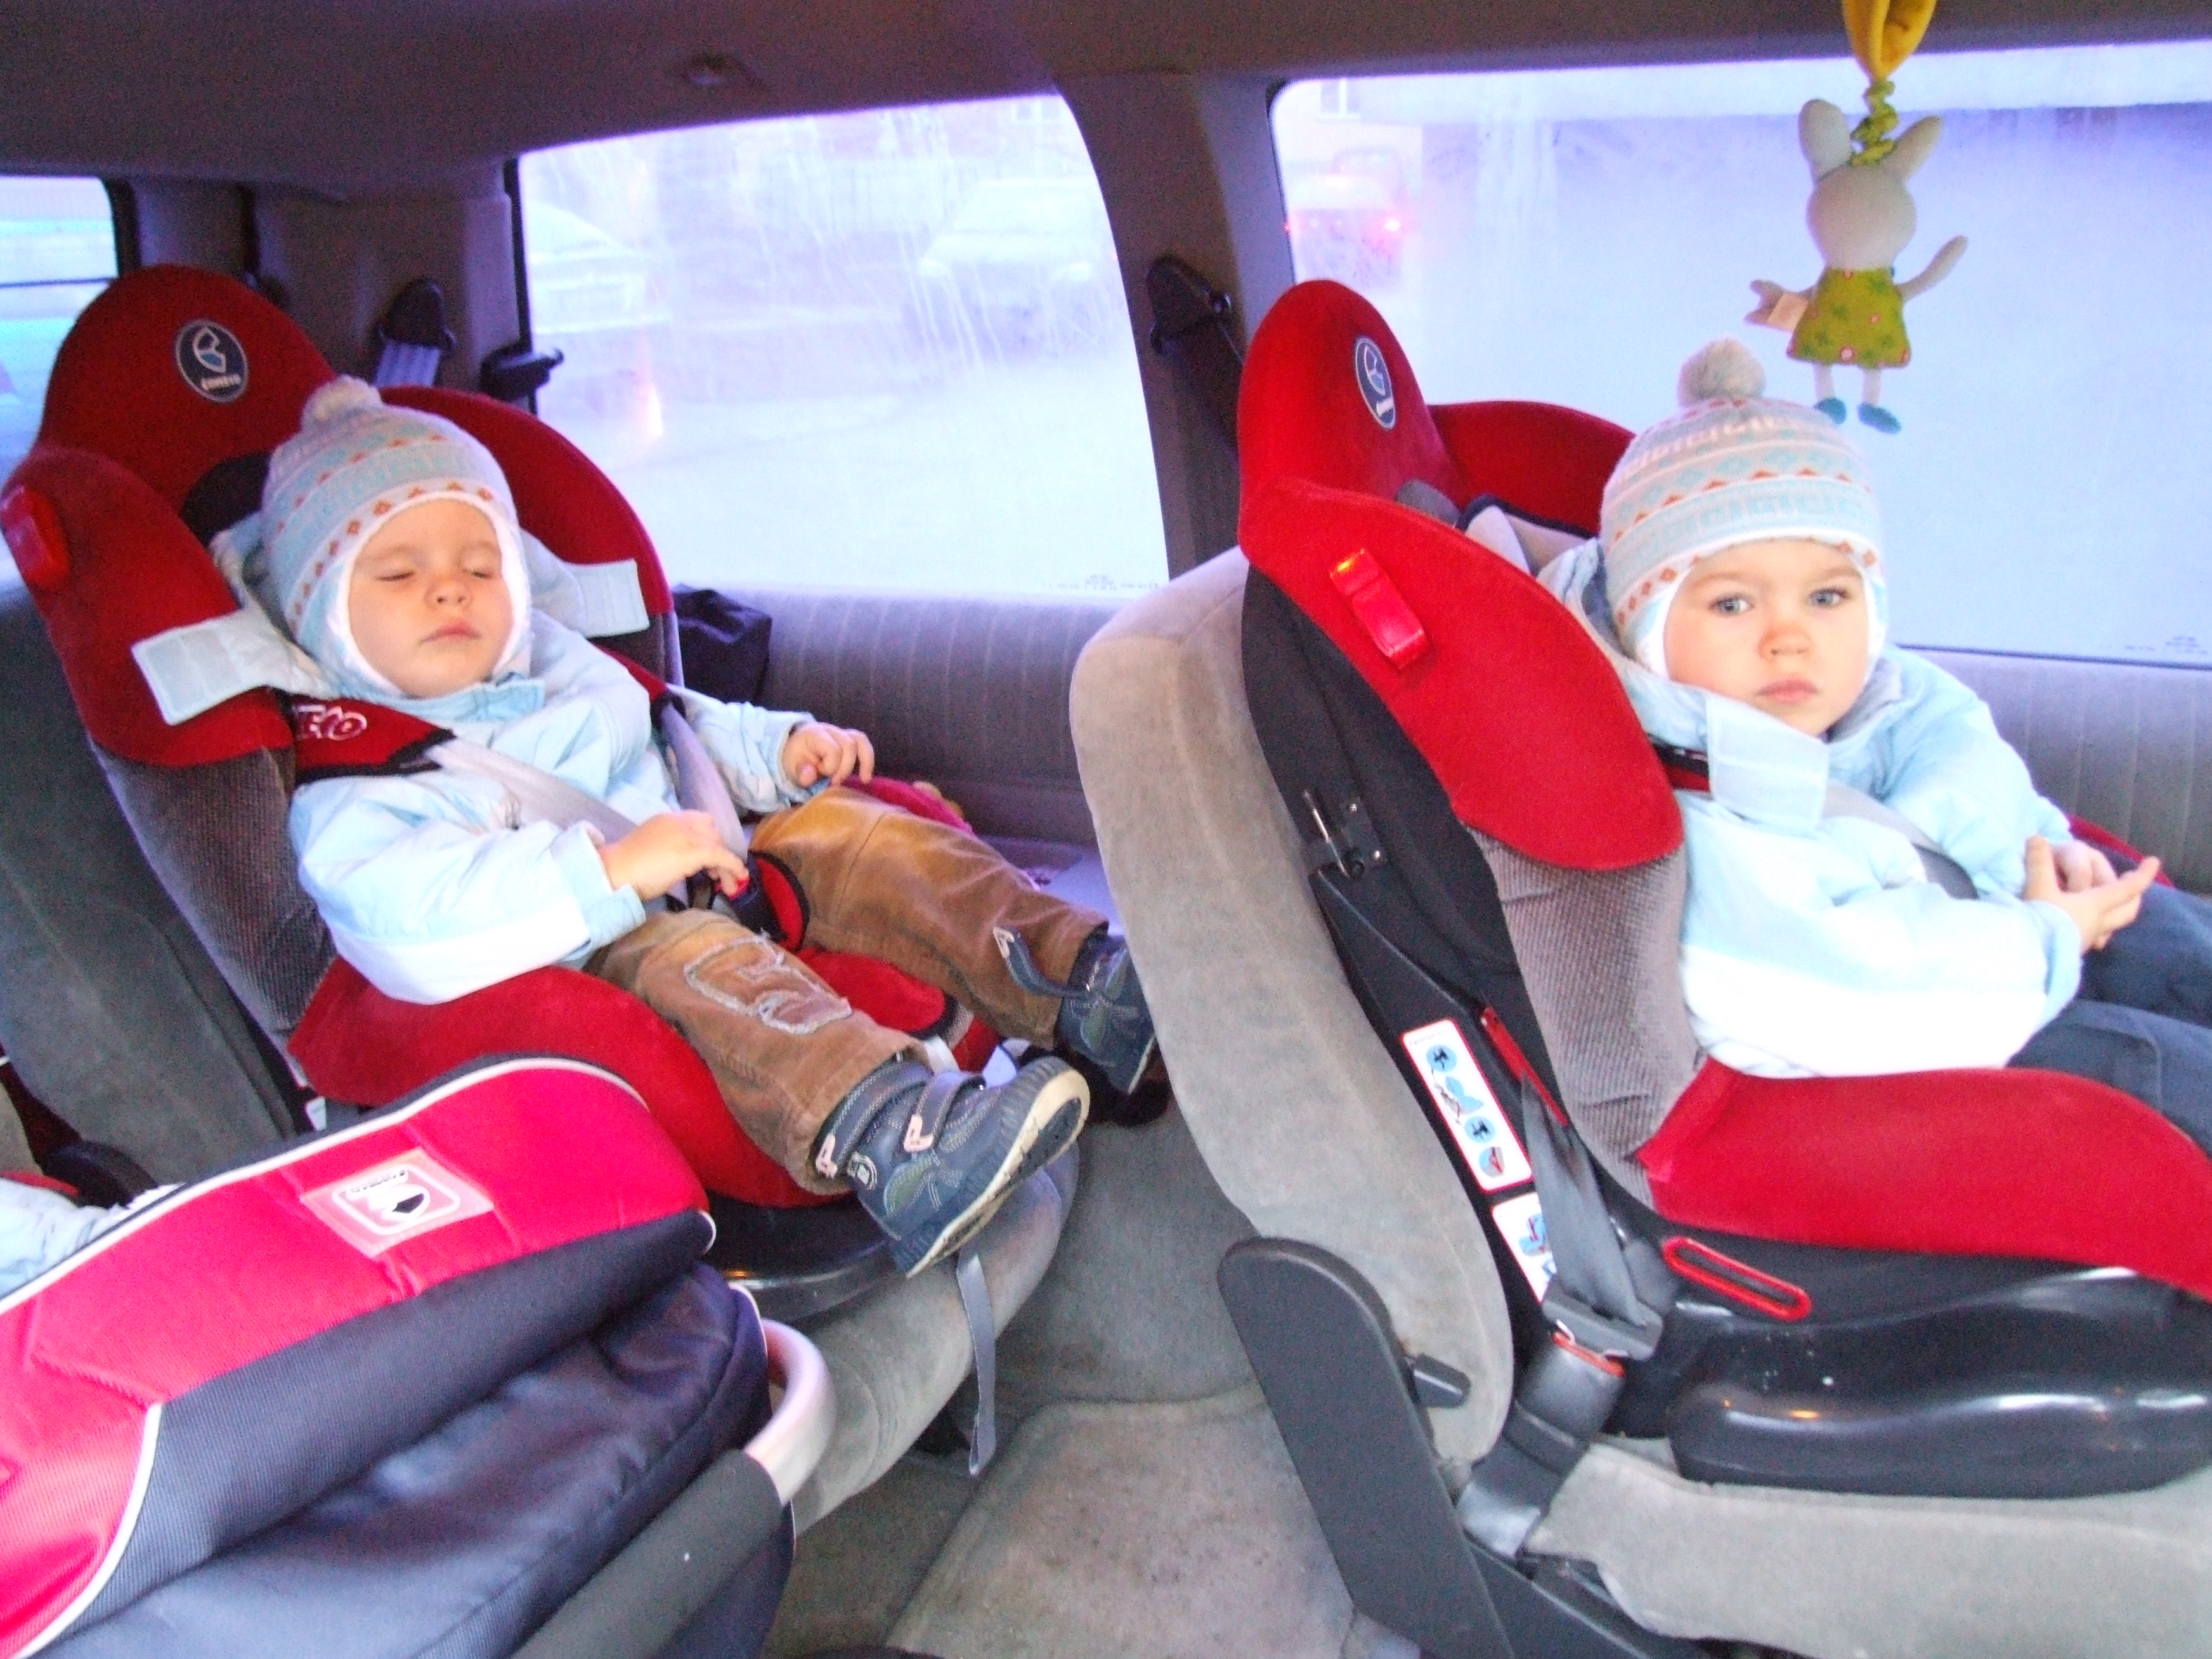 Best Backless Booster Seats for Kids in 2019 – [VERY COMFORTABLE]